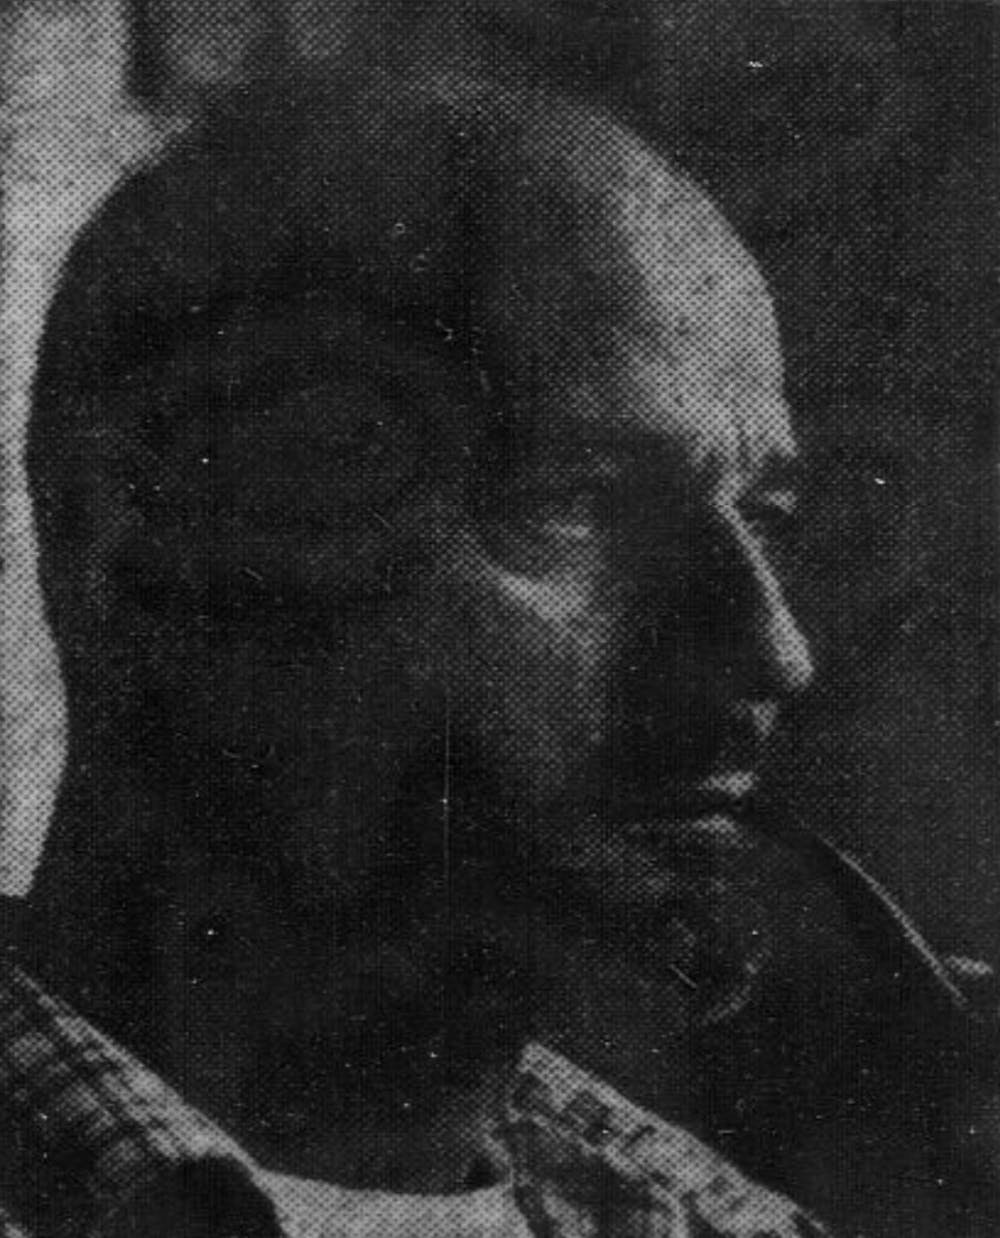 <p>DTH Archive. Lawrence Ferlinghetti, an esteemed poet, publisher, and owner of City Lights Booksellers &amp; Publishers in San Francisco, attended UNC, worked for The Daily Tar Heel and pursued a journalism degree.&nbsp;</p>